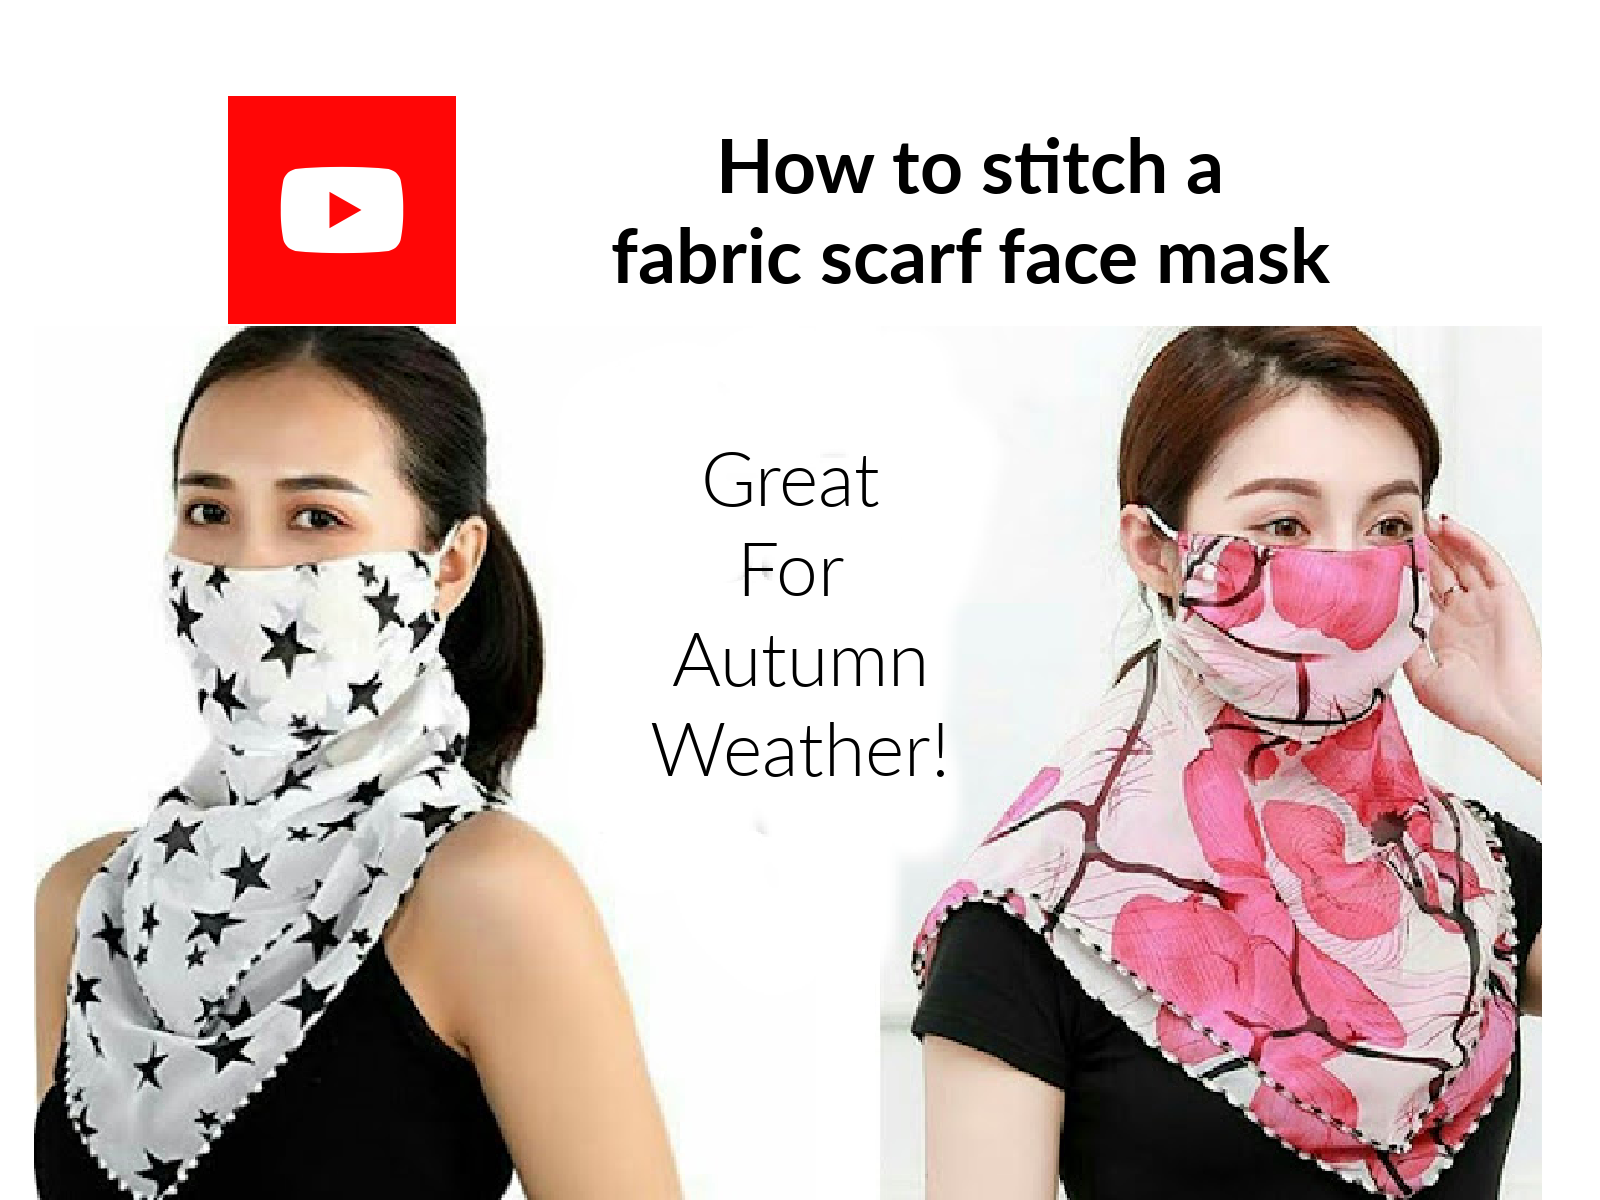 How to stitch a fabric scarf face mask